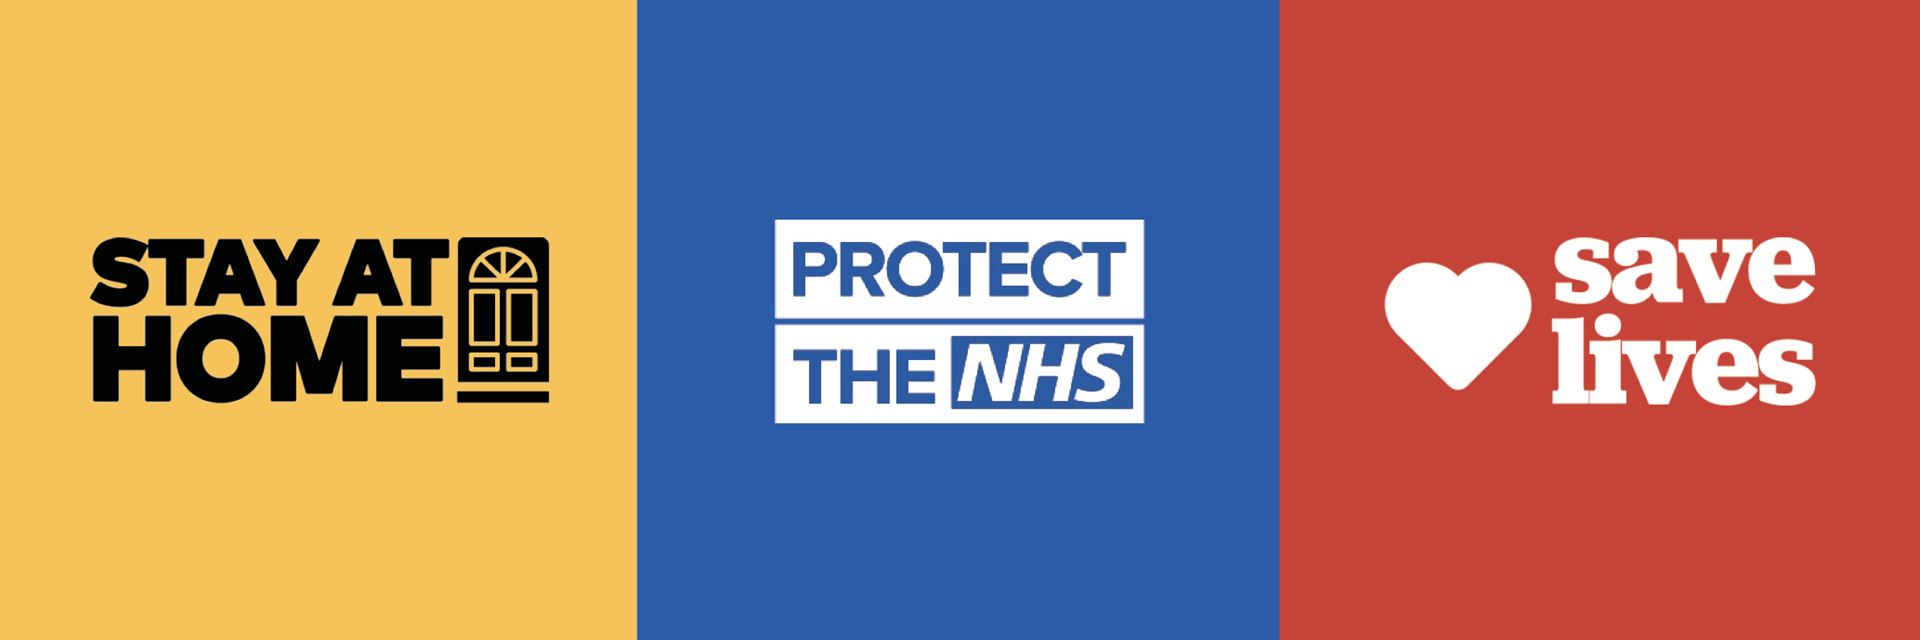 Coronavirus public safety message - Stay at home, protect the NHS, safe lives